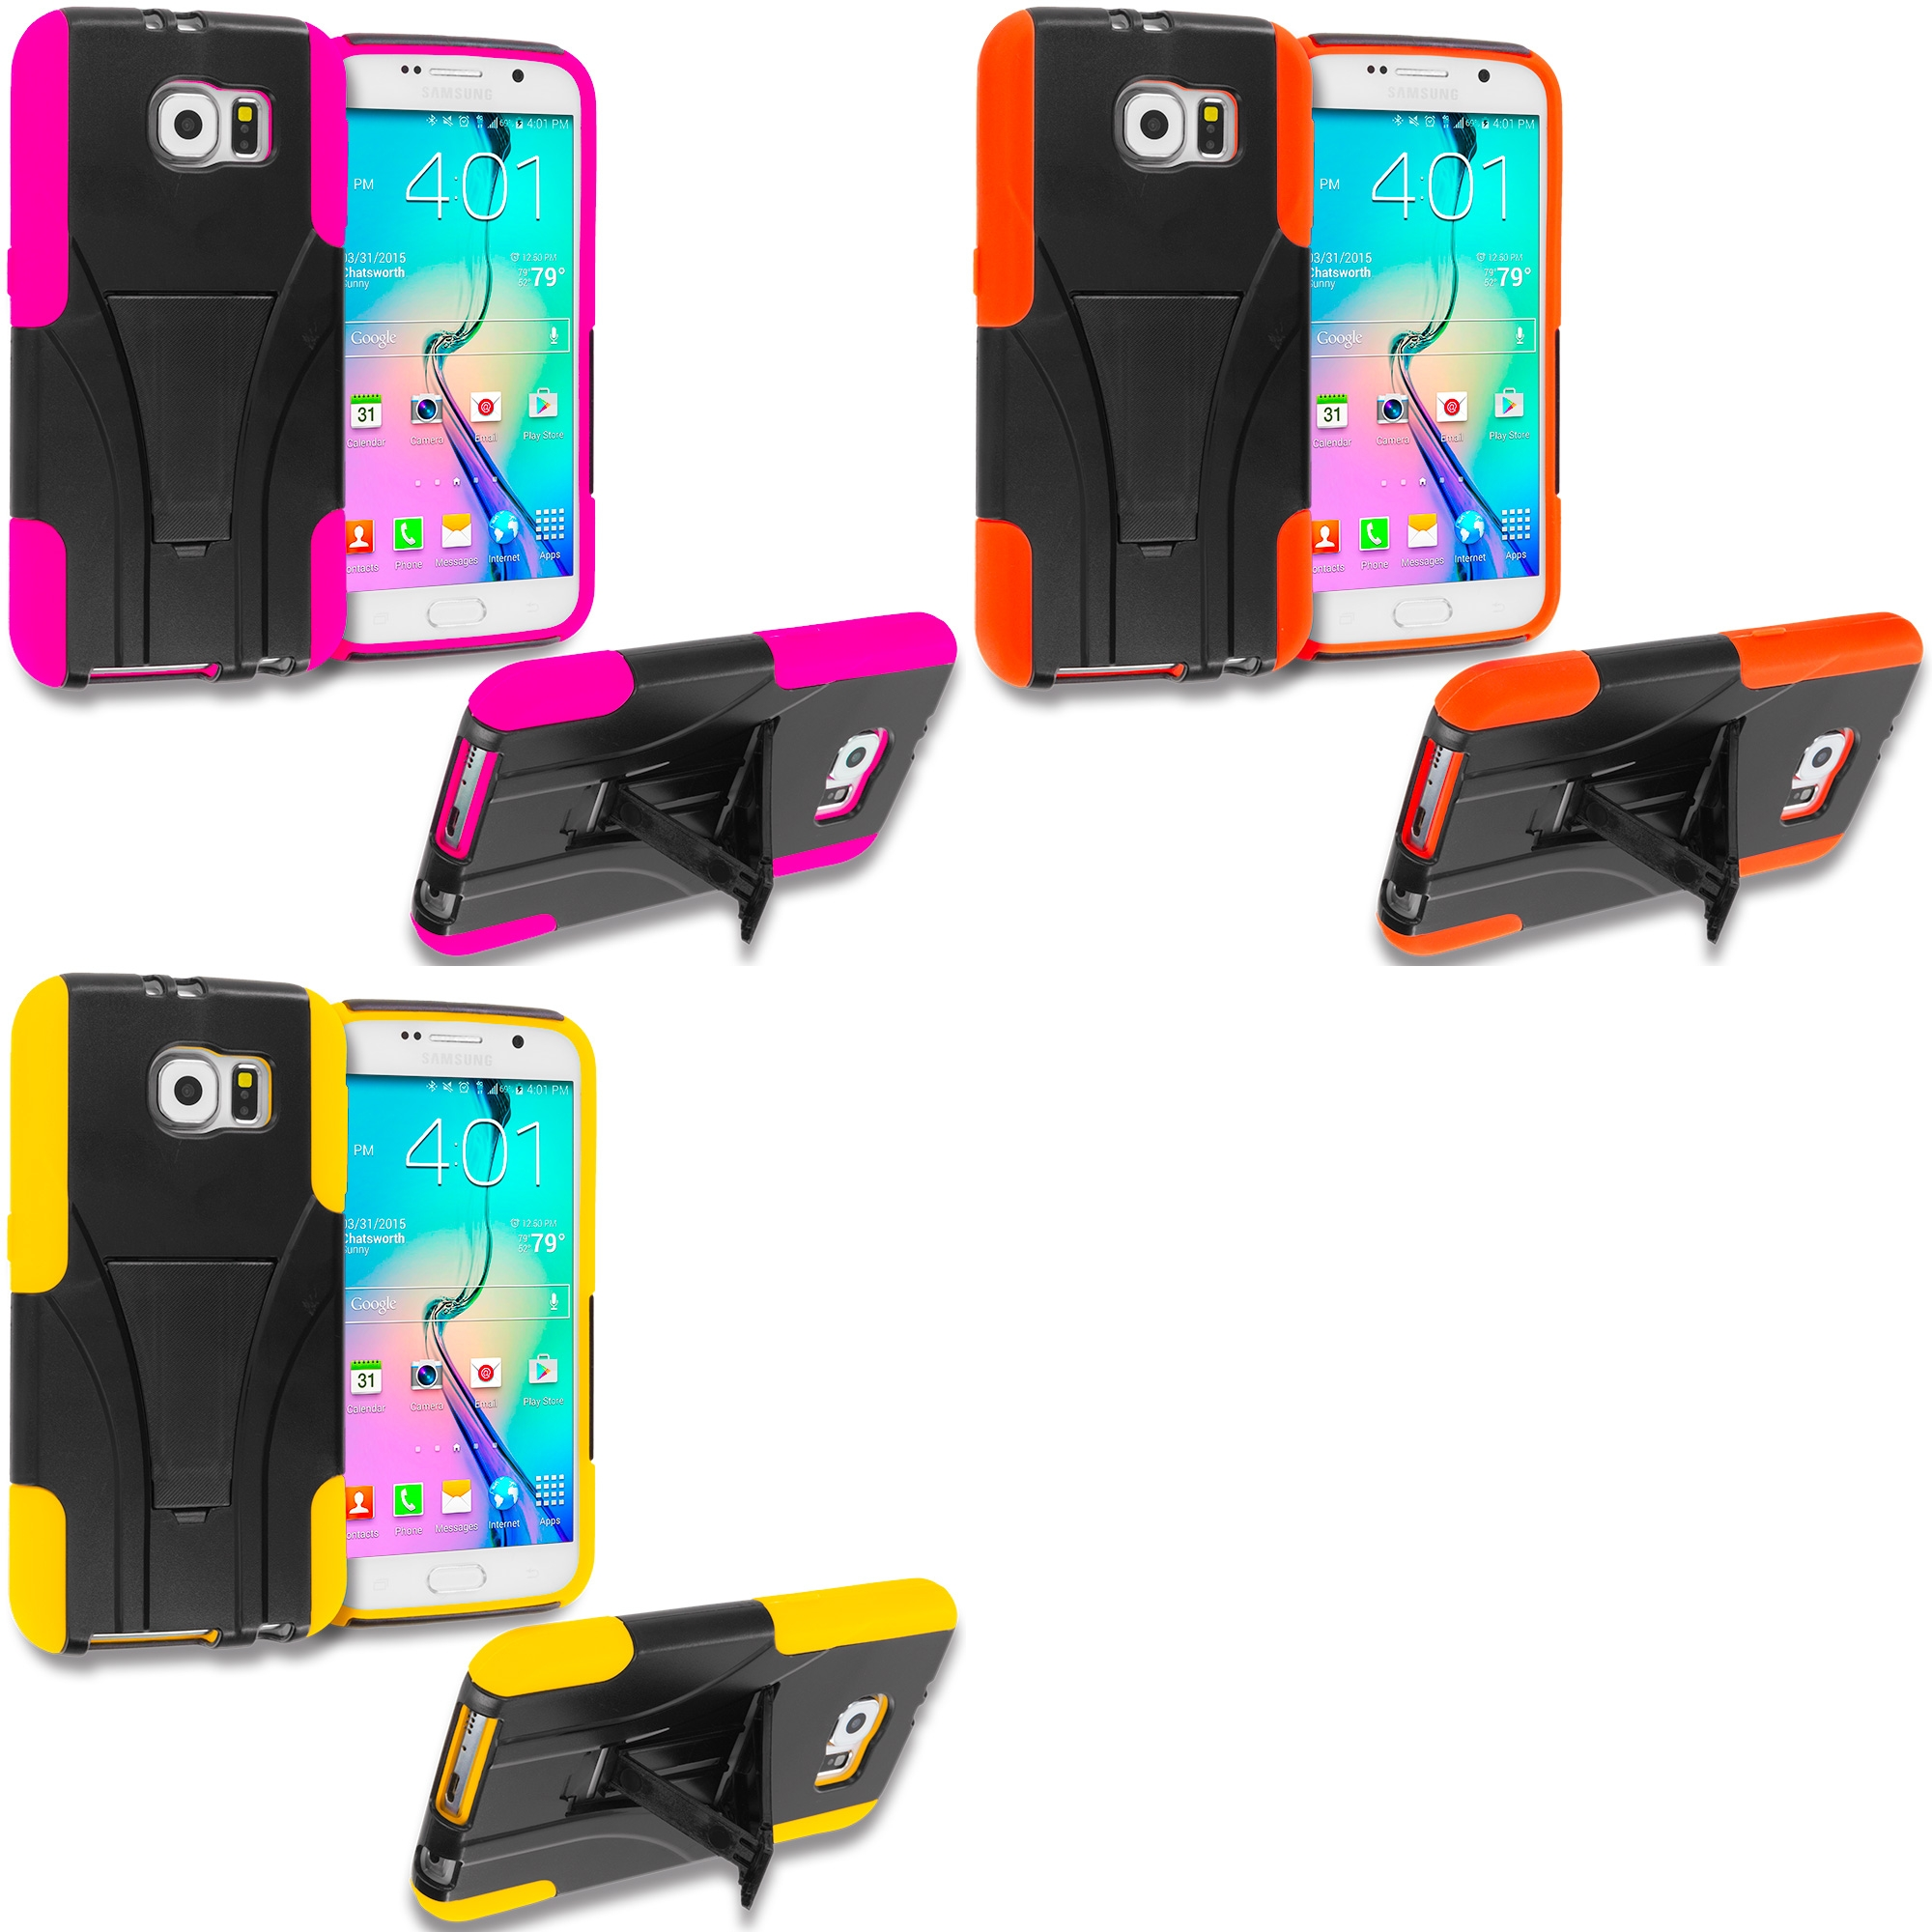 Samsung Galaxy S6 Combo Pack : Black / Hot Pink Hybrid Hard Soft Shockproof Case Cover with Kickstand